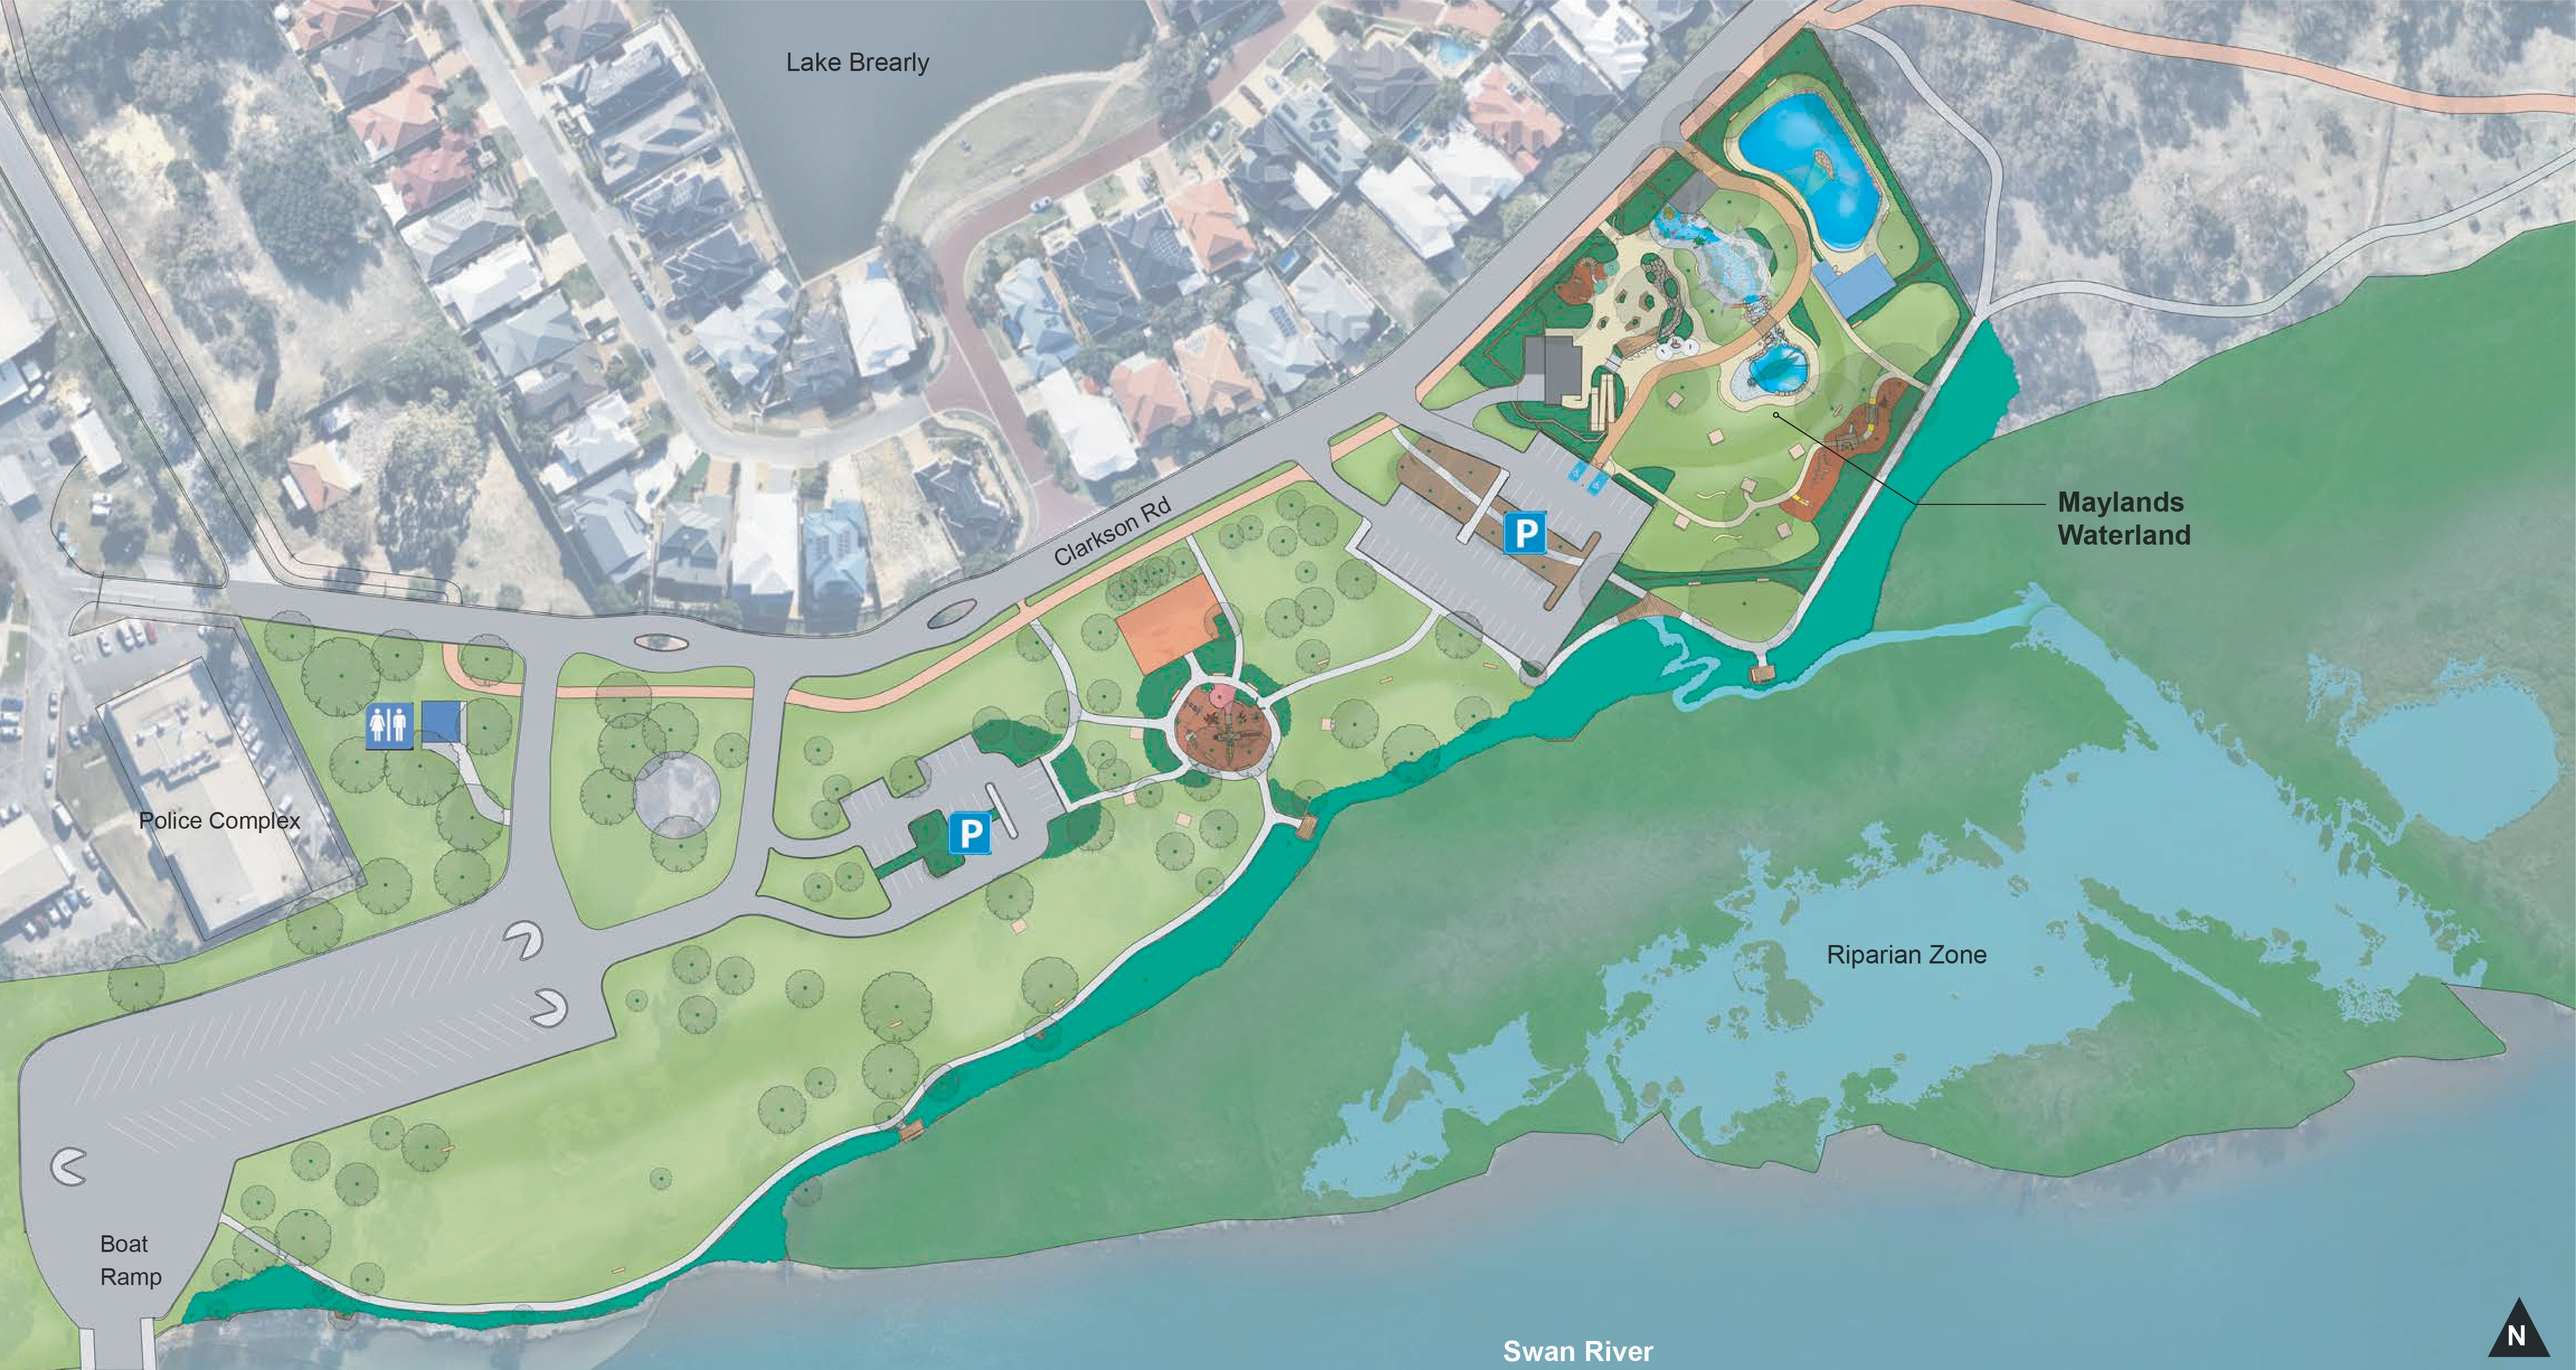 Waterland Overall Landscape Plan